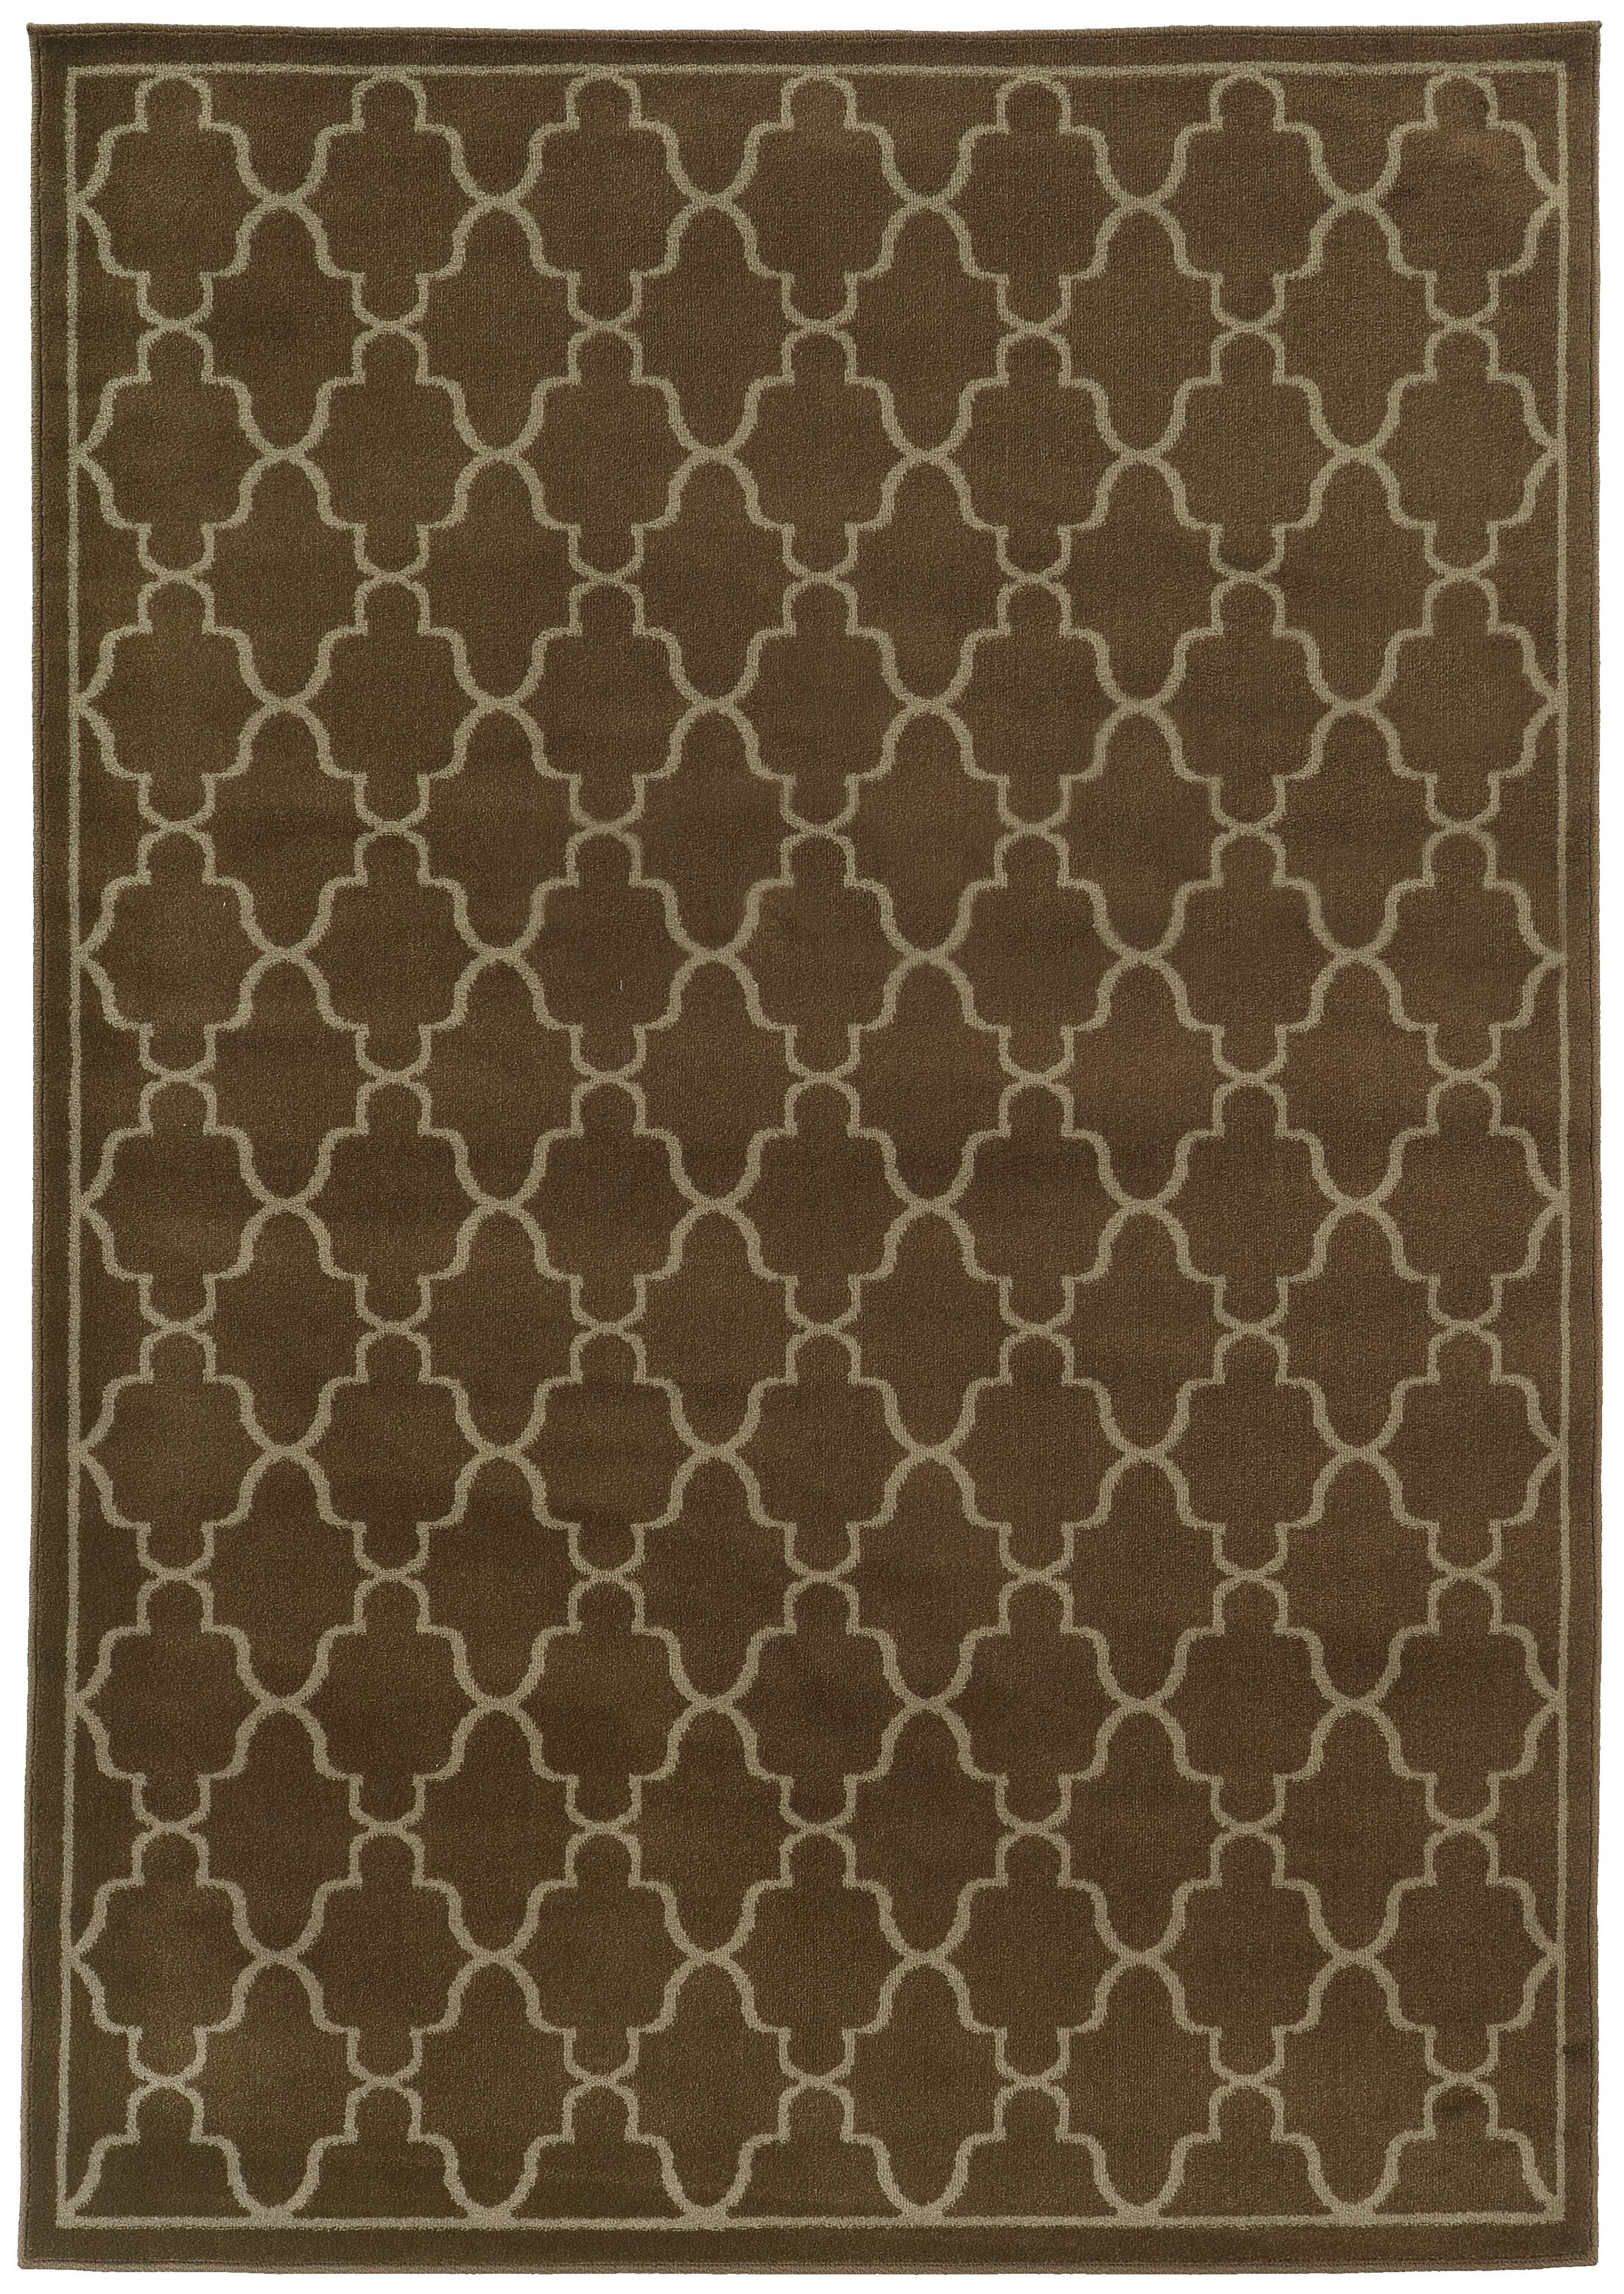 Delshire Lattice Brown/Beige Area Rug Rug Size: Rectangle 6'7